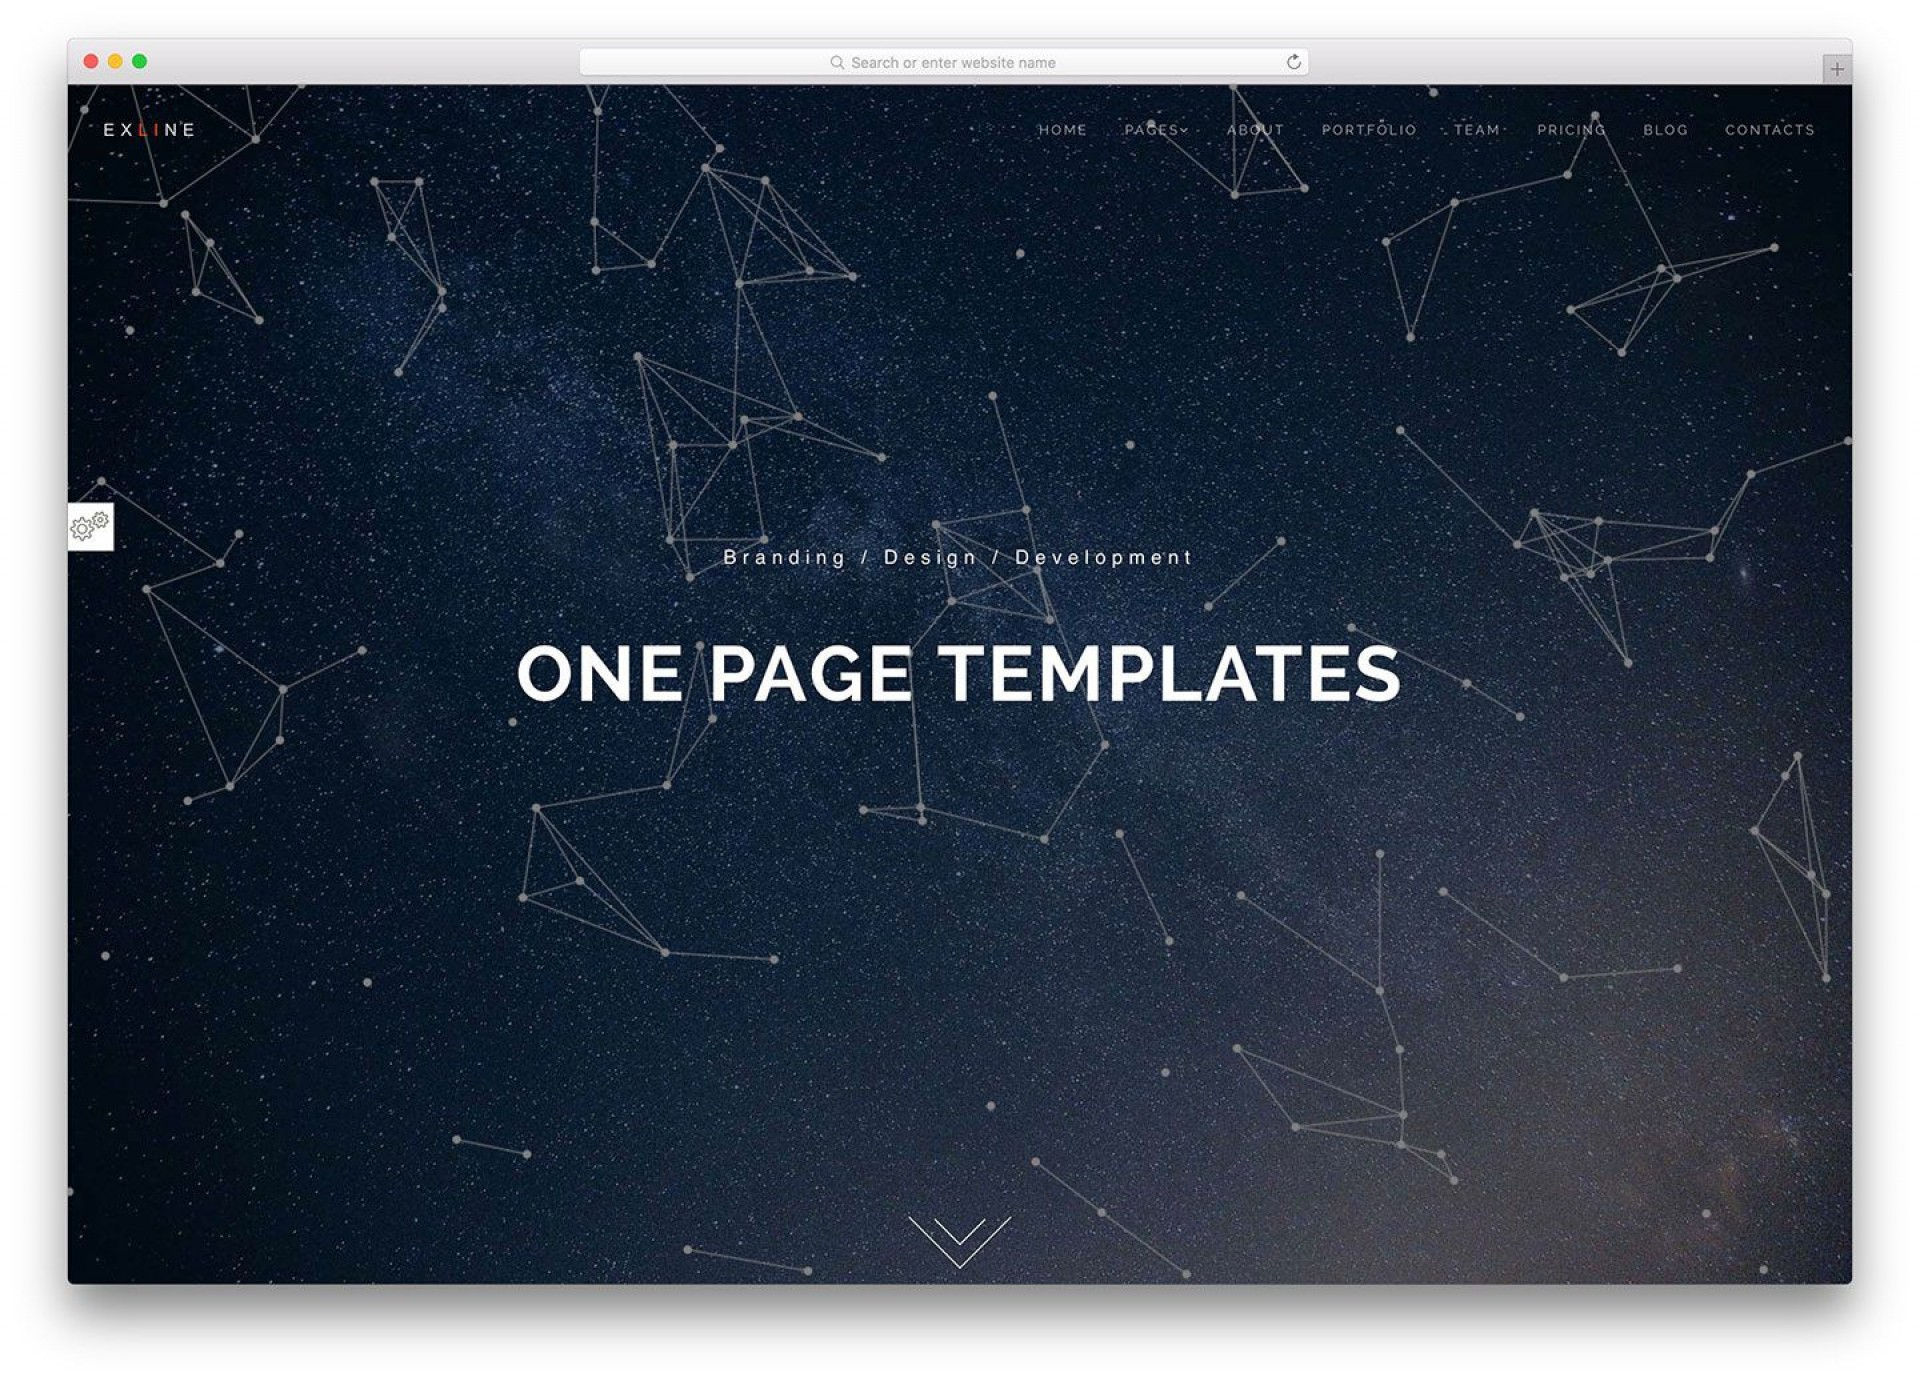 003 Outstanding One Page Website Template Html5 Responsive Free Download Concept 1920